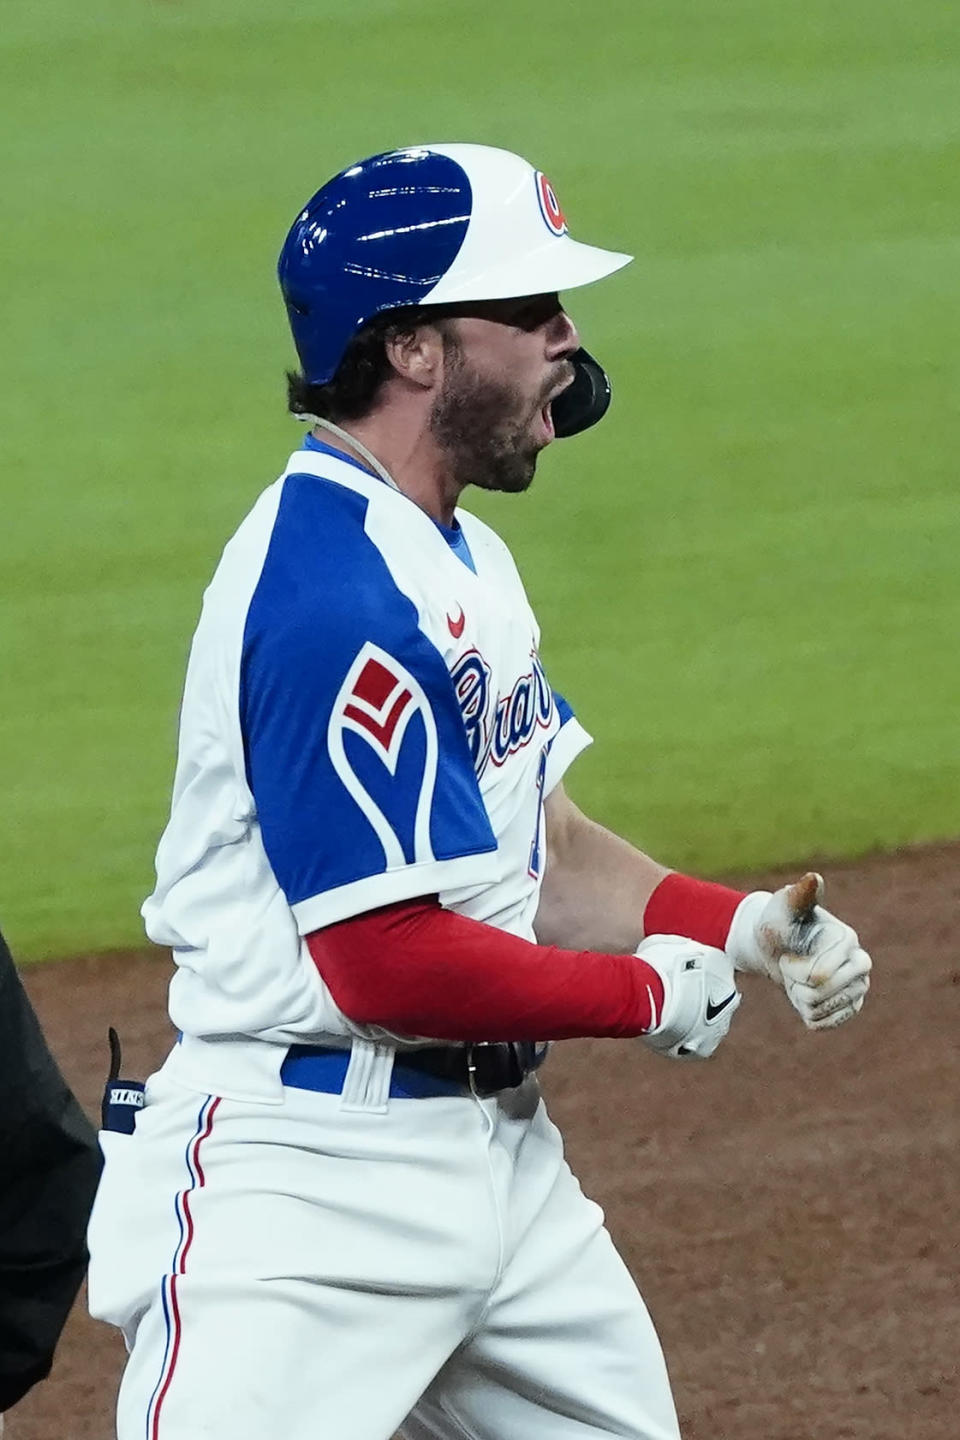 Atlanta Braves' Dansby Swanson (7) reacts after driving in a run with a double In the sixth inning of a baseball game against the Philadelphia Phillies, Saturday, April 10, 2021, in Atlanta. (AP Photo/John Bazemore)